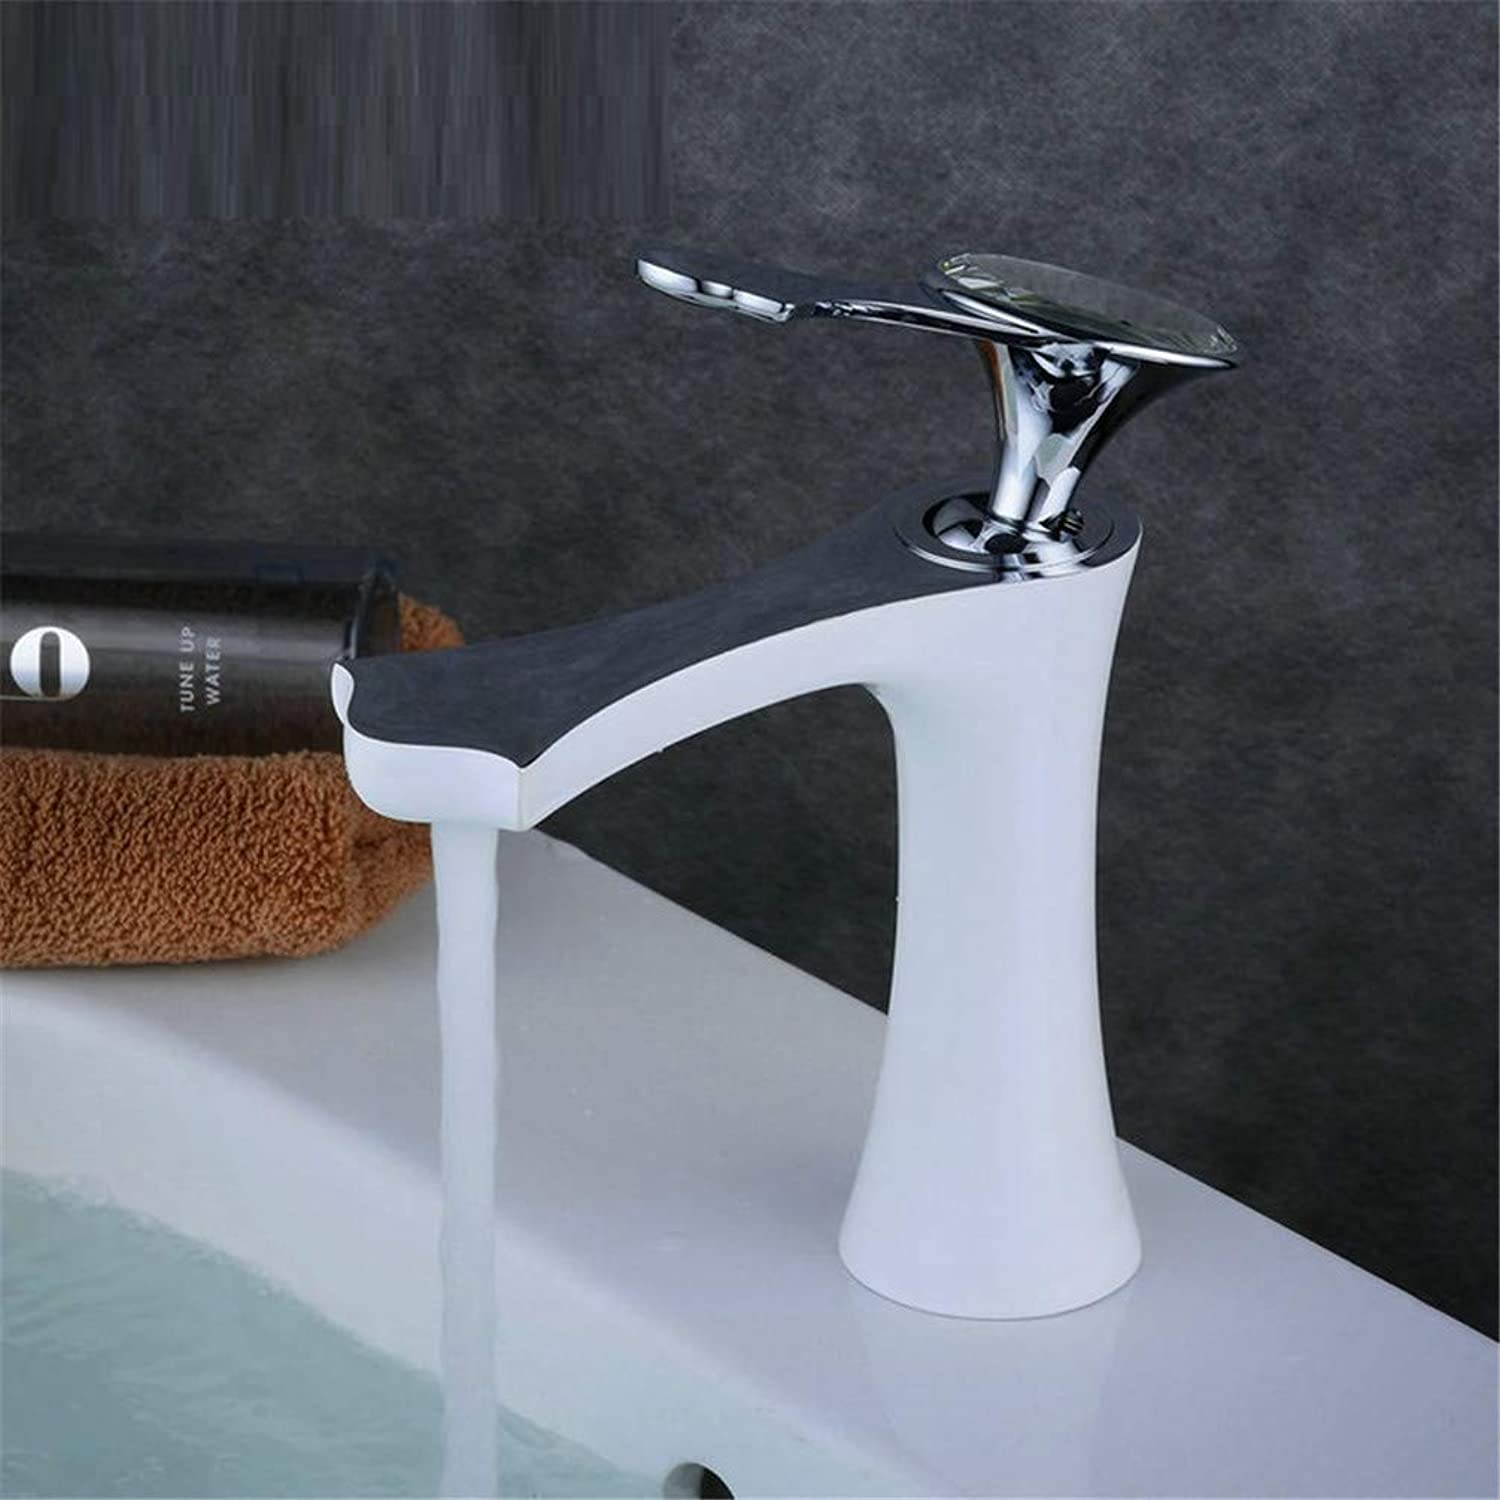 GROHES mixer tap for basin - Stunning Waterfall Bathroom Sink Monoblock Mixer Faucet Black and Chrome Handle,gold- white,White